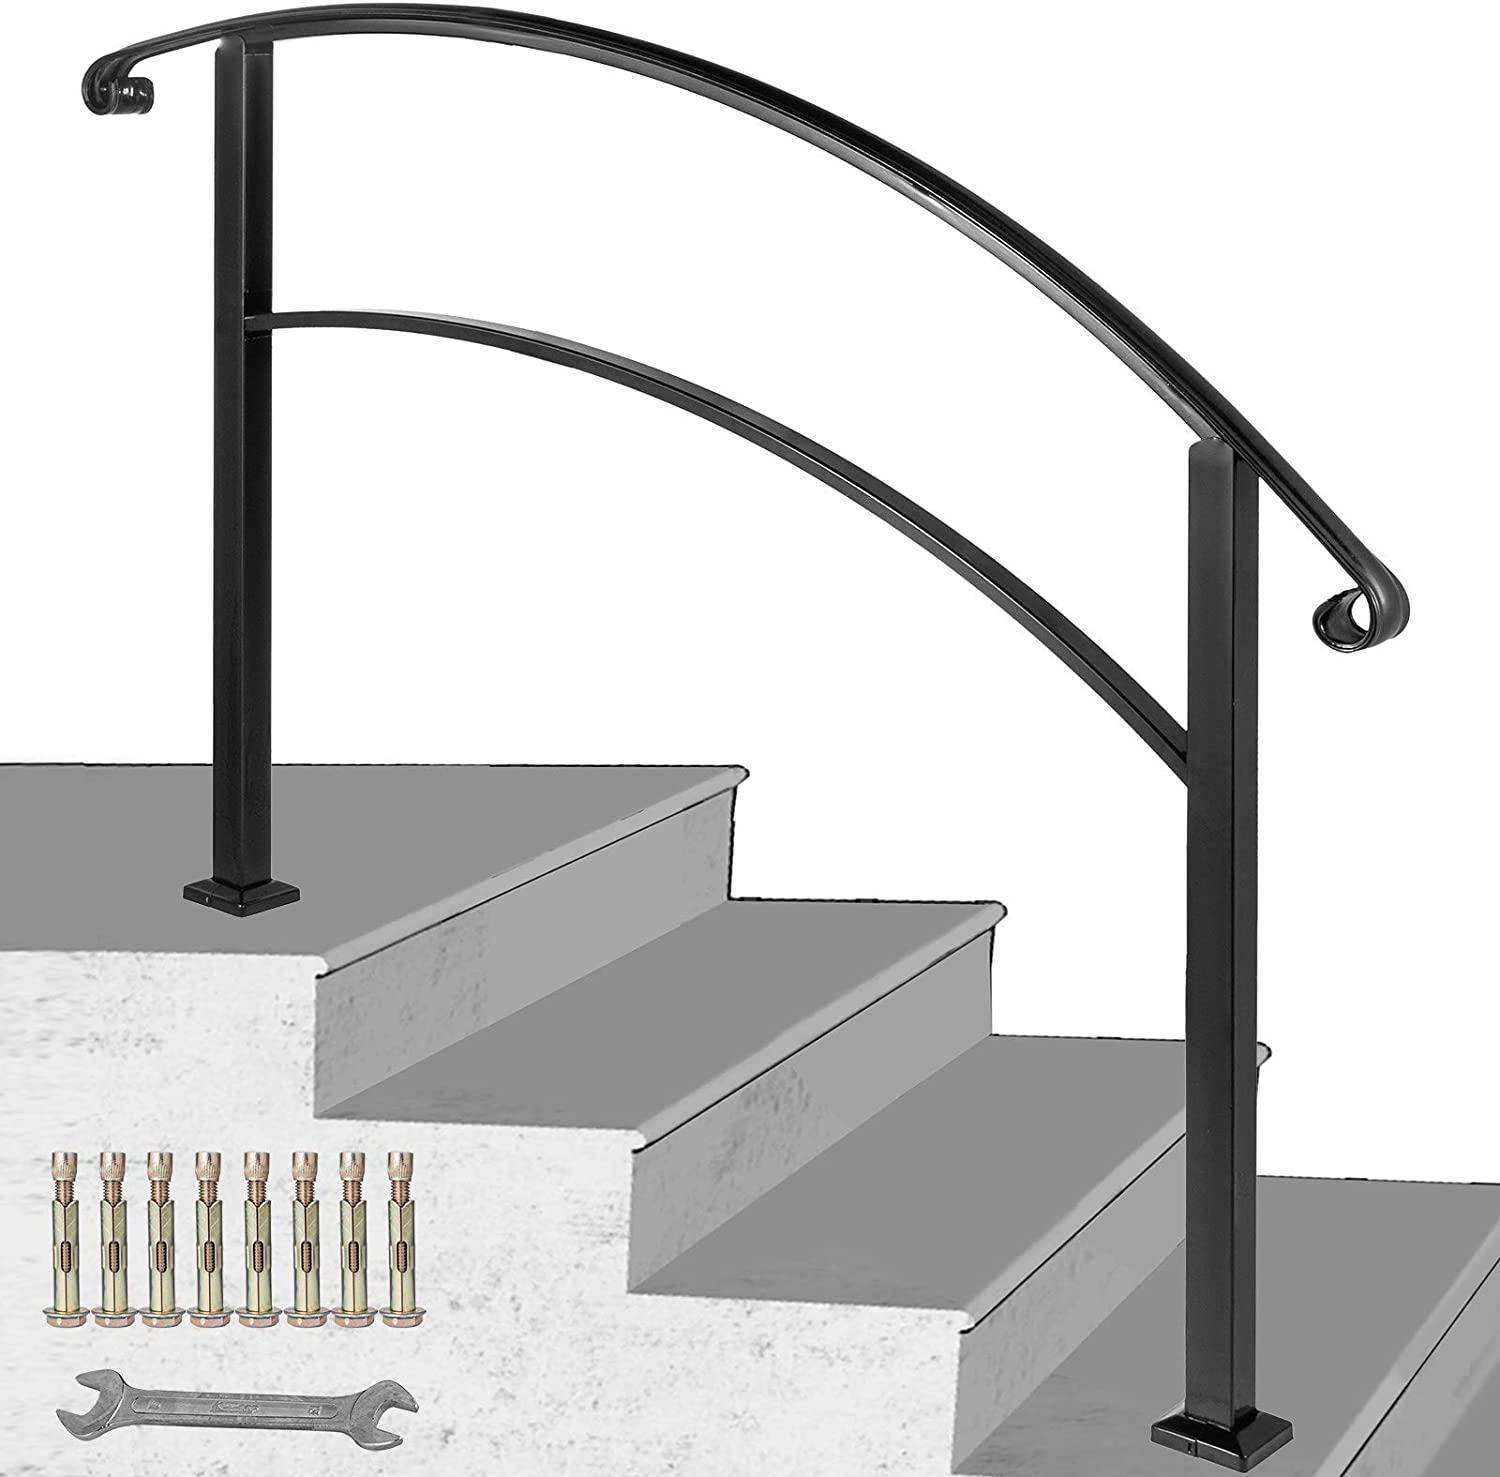 Handrails for Outdoor Steps,Outdoor Handrails Metal Wrought Iron Handrail Wall Mounted Stair Railing Bracke Black Handrail Railings for Steps Porch(Black)